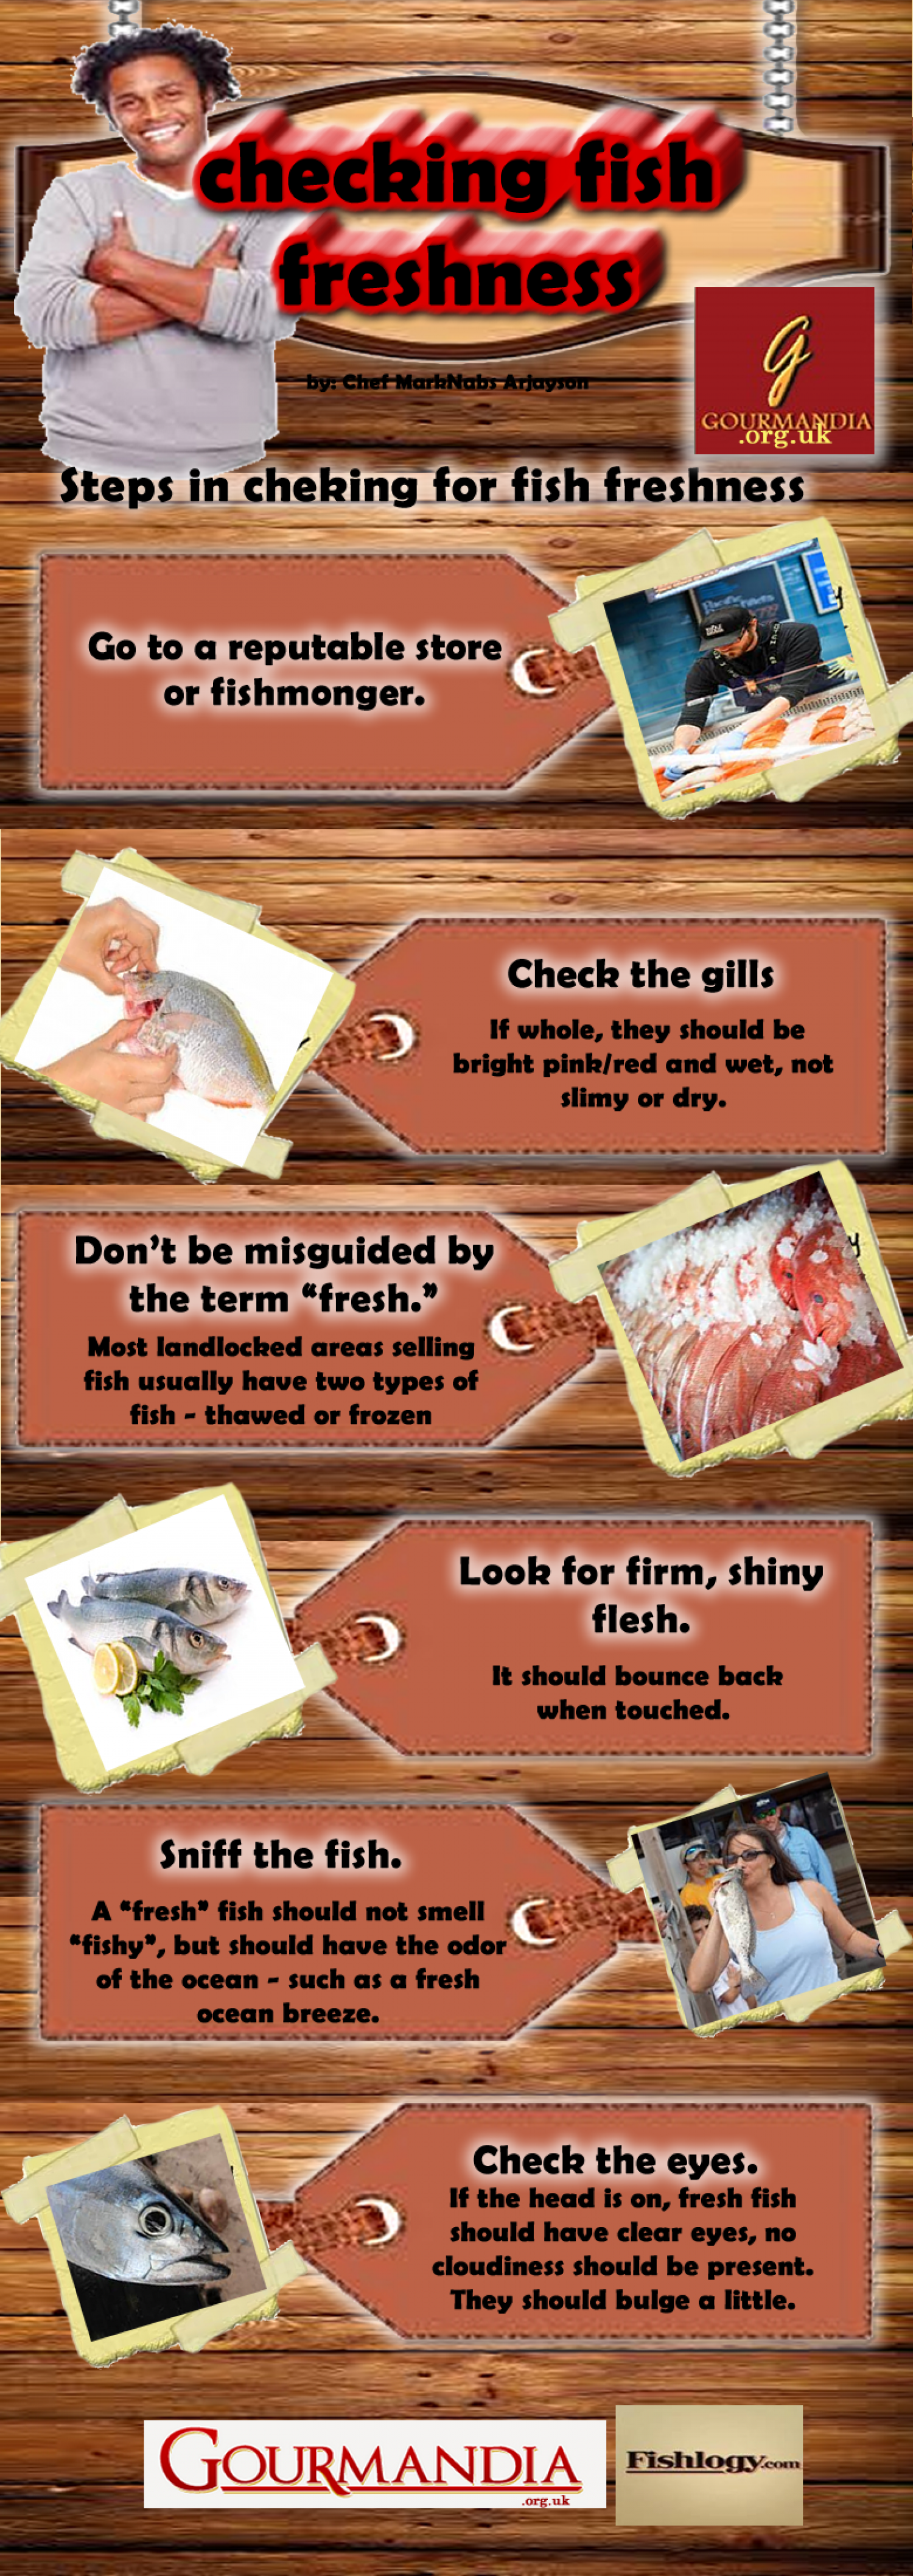 Checking Fish Freshness Infographic